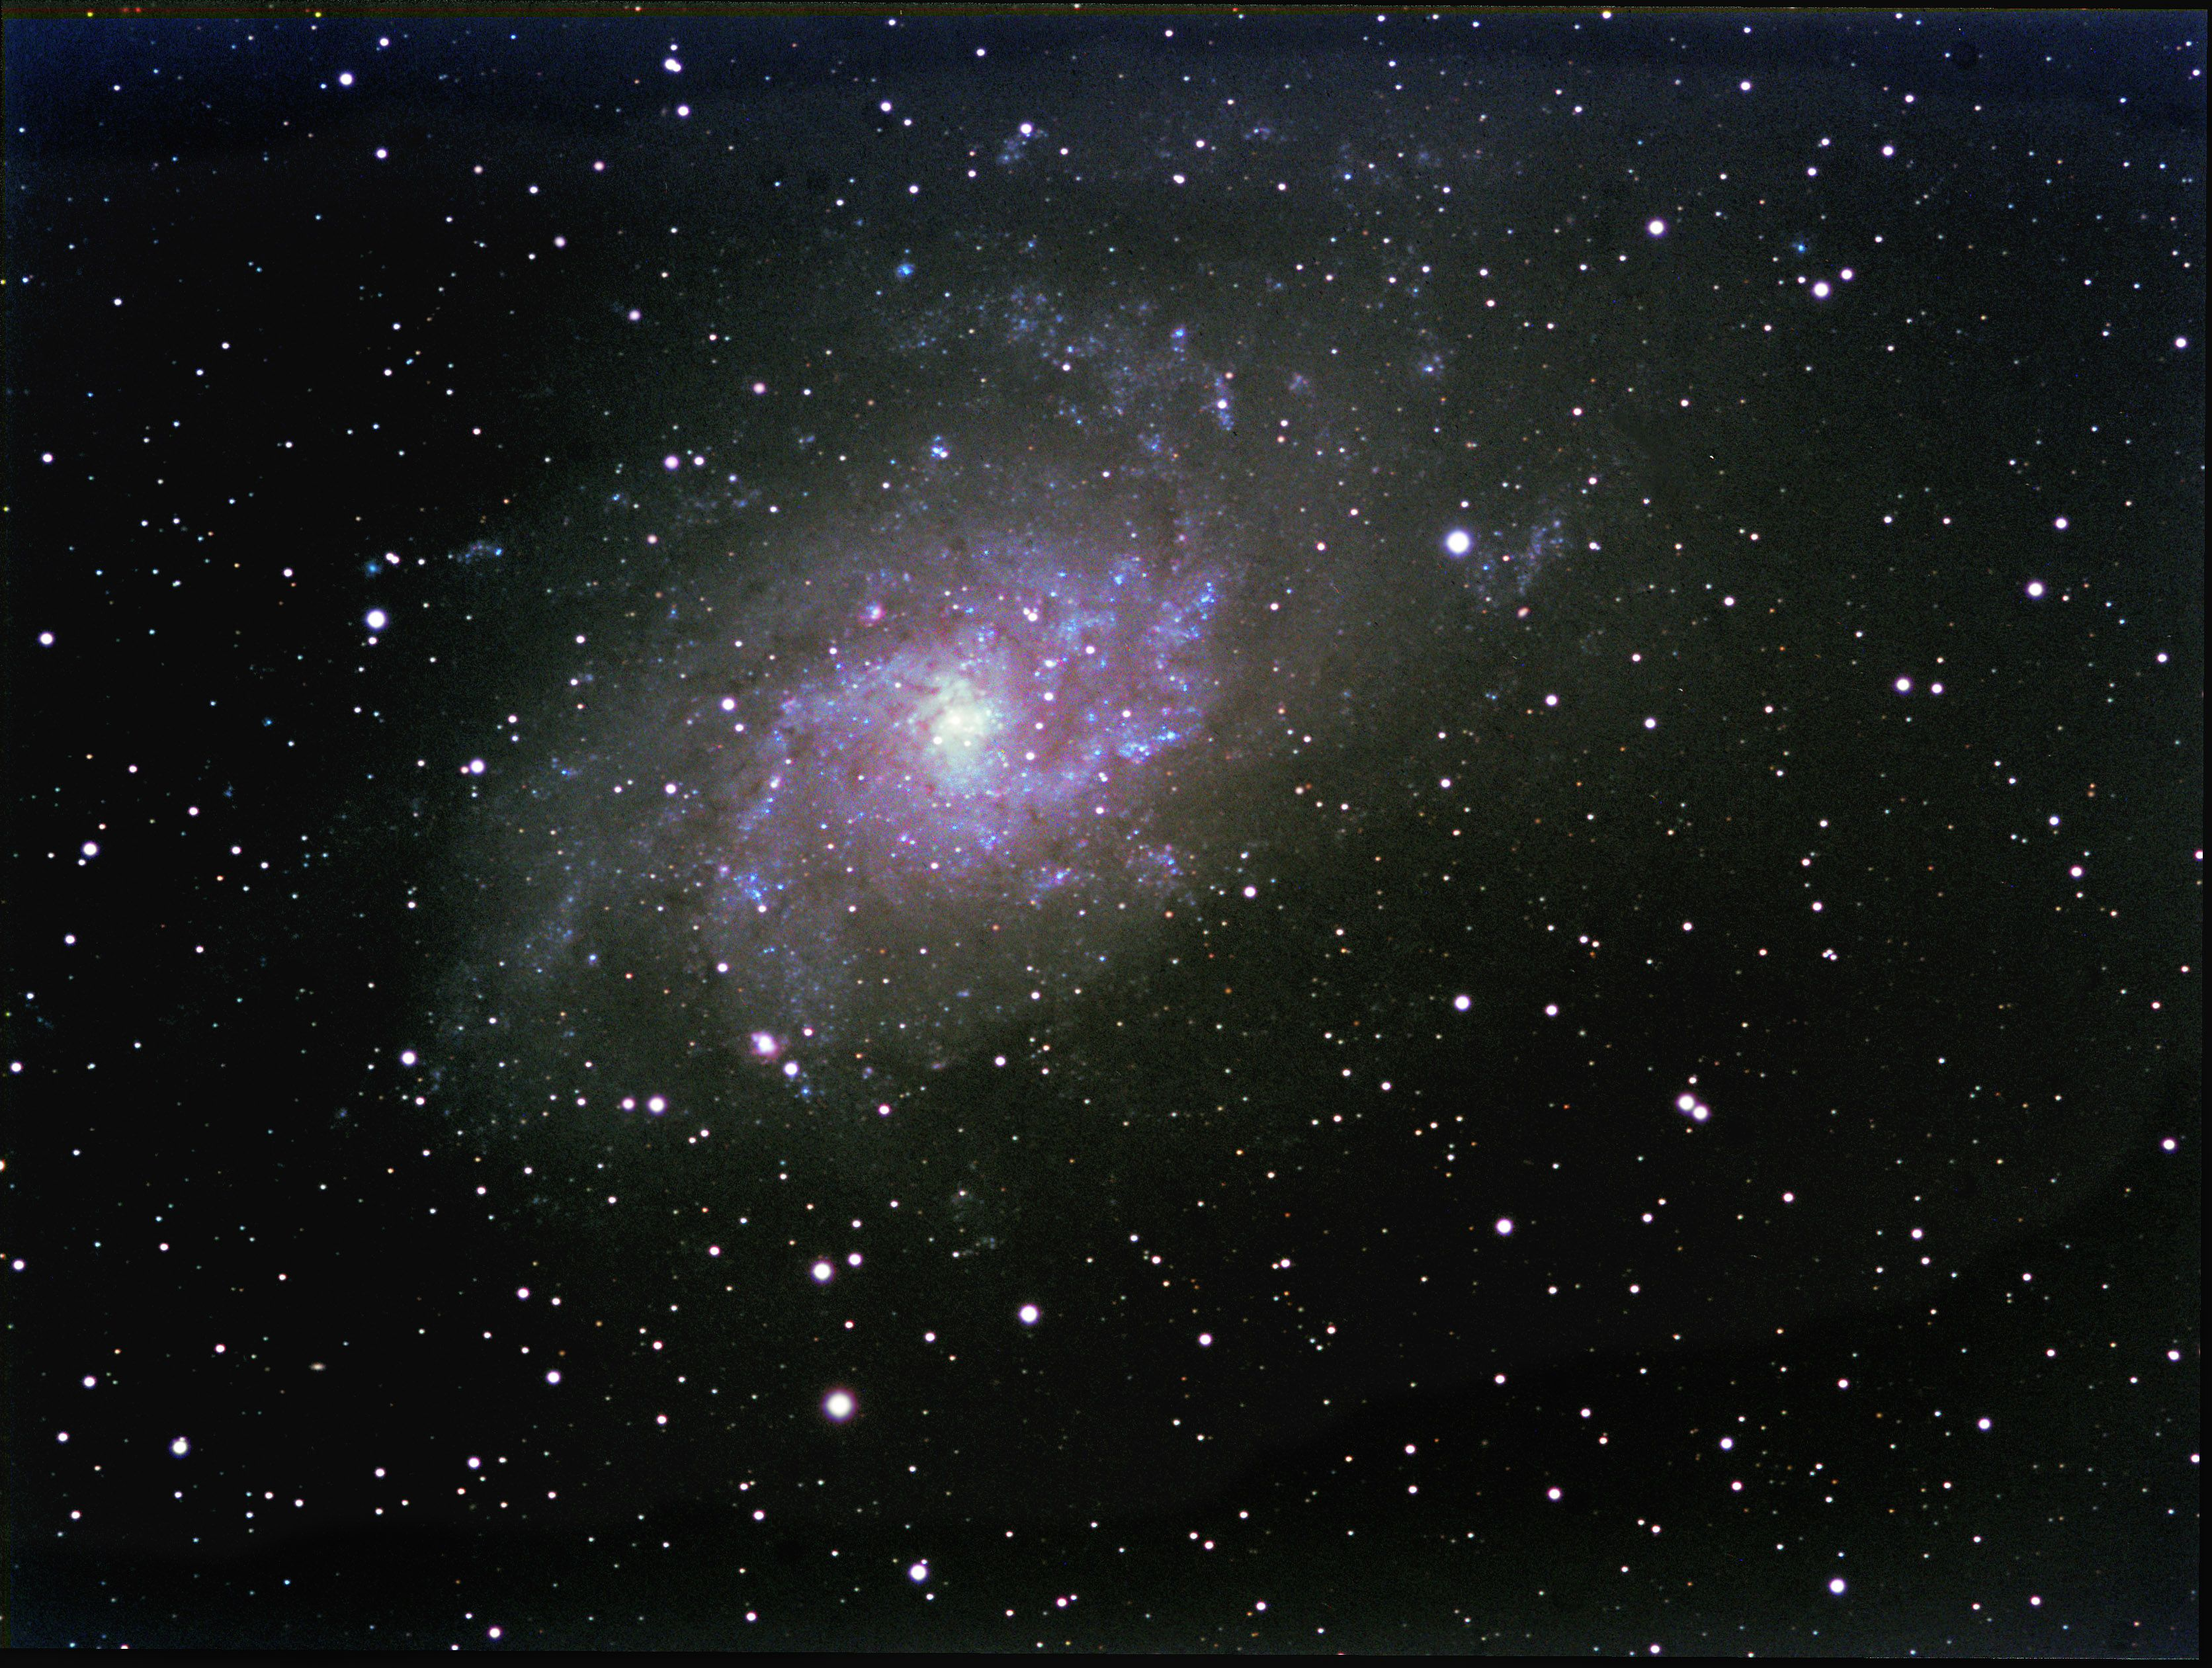 M33 - The Triangulum Galaxy